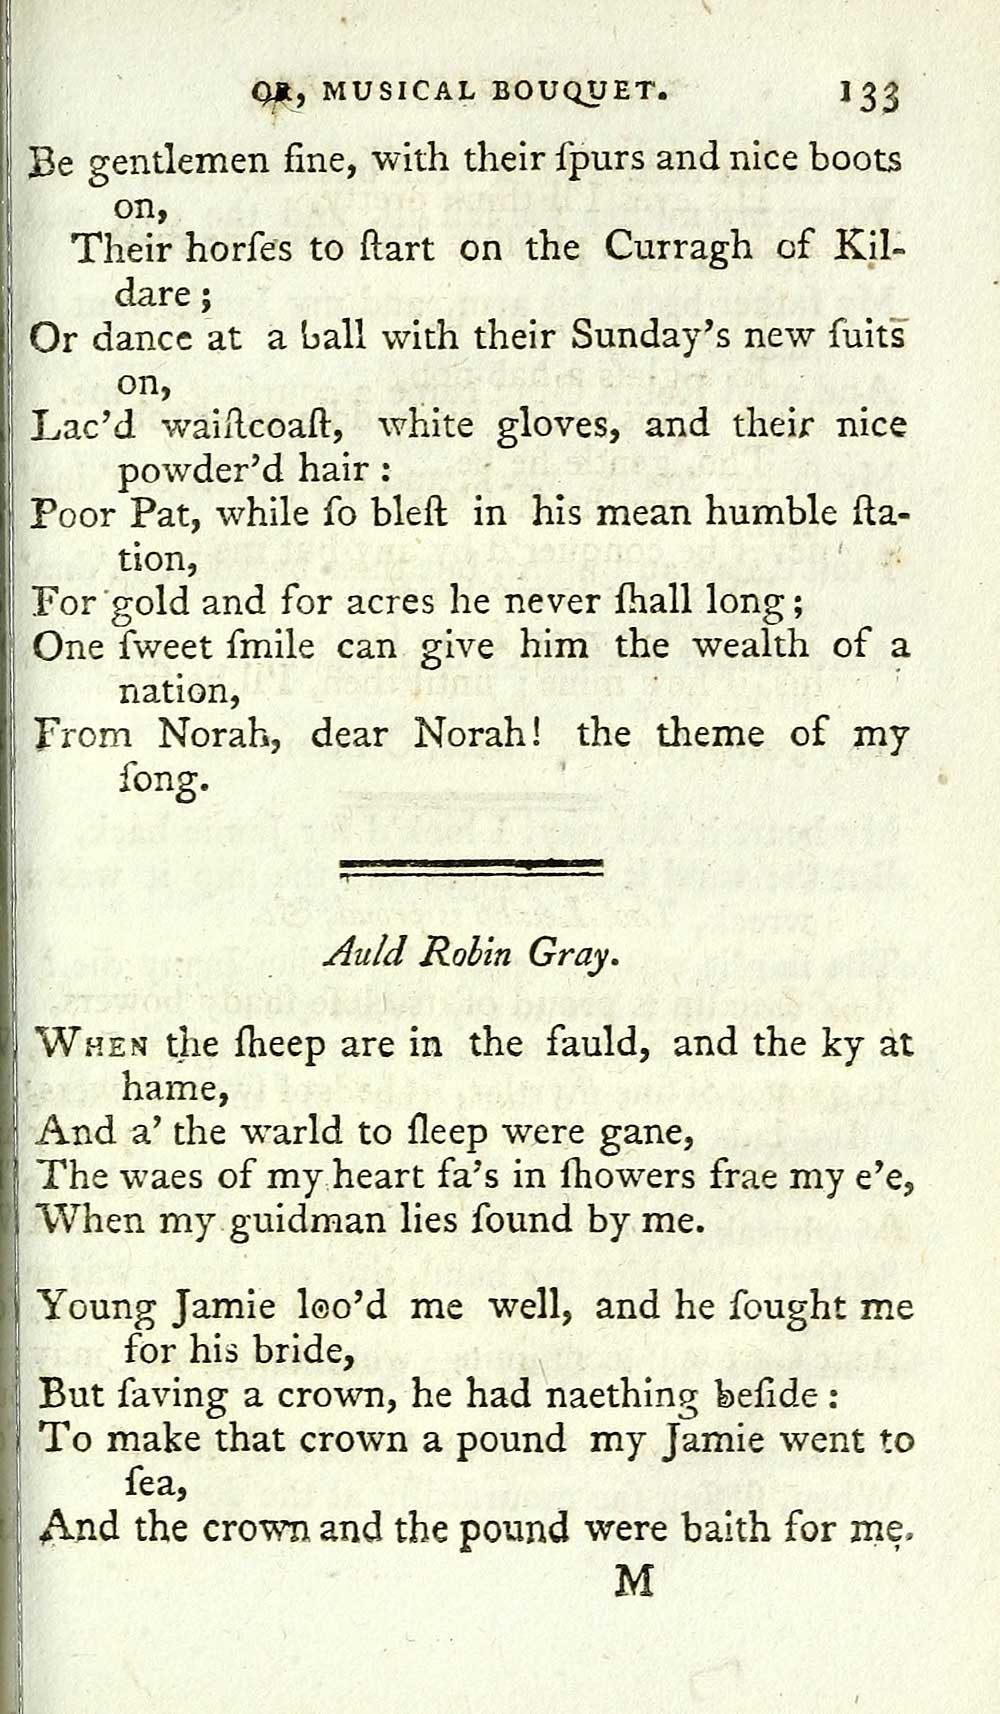 143) Page 133 - Auld Robin Gray - Glen Collection of printed